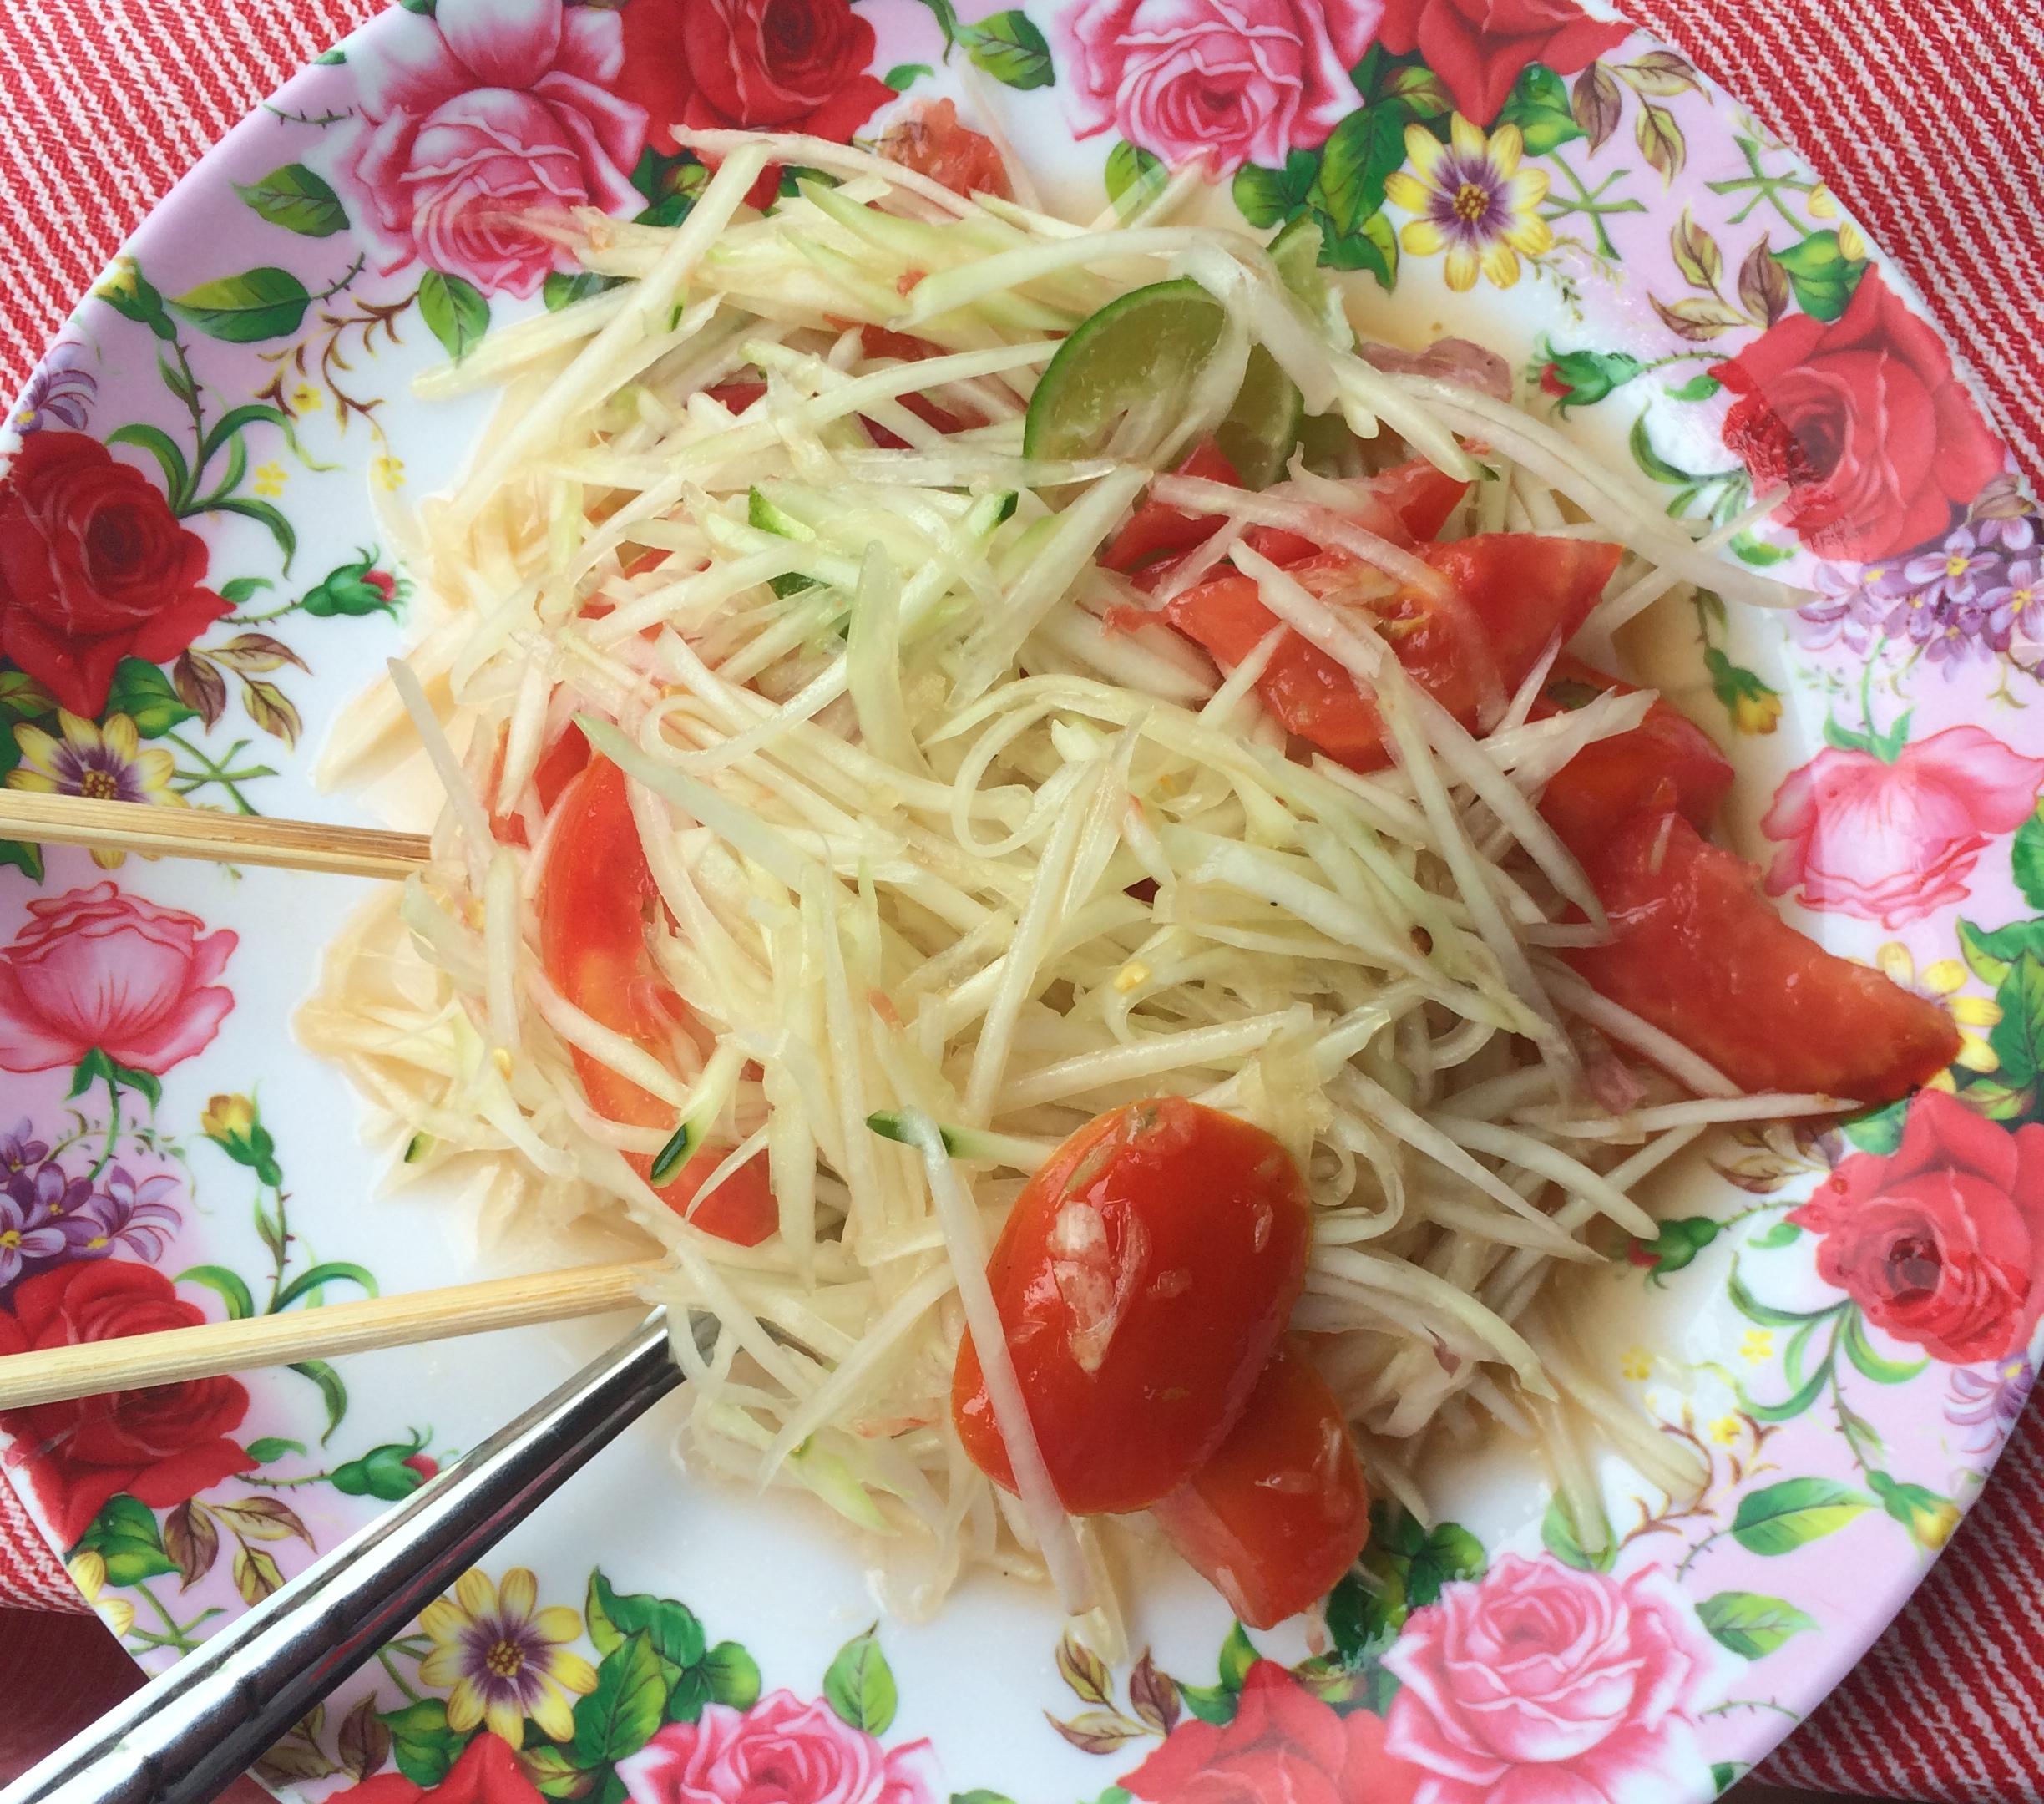 photo essay tv host eden grinshpan took your dream trip to eden grinshpan had learned how to make papaya salad on a previous trip to thailand